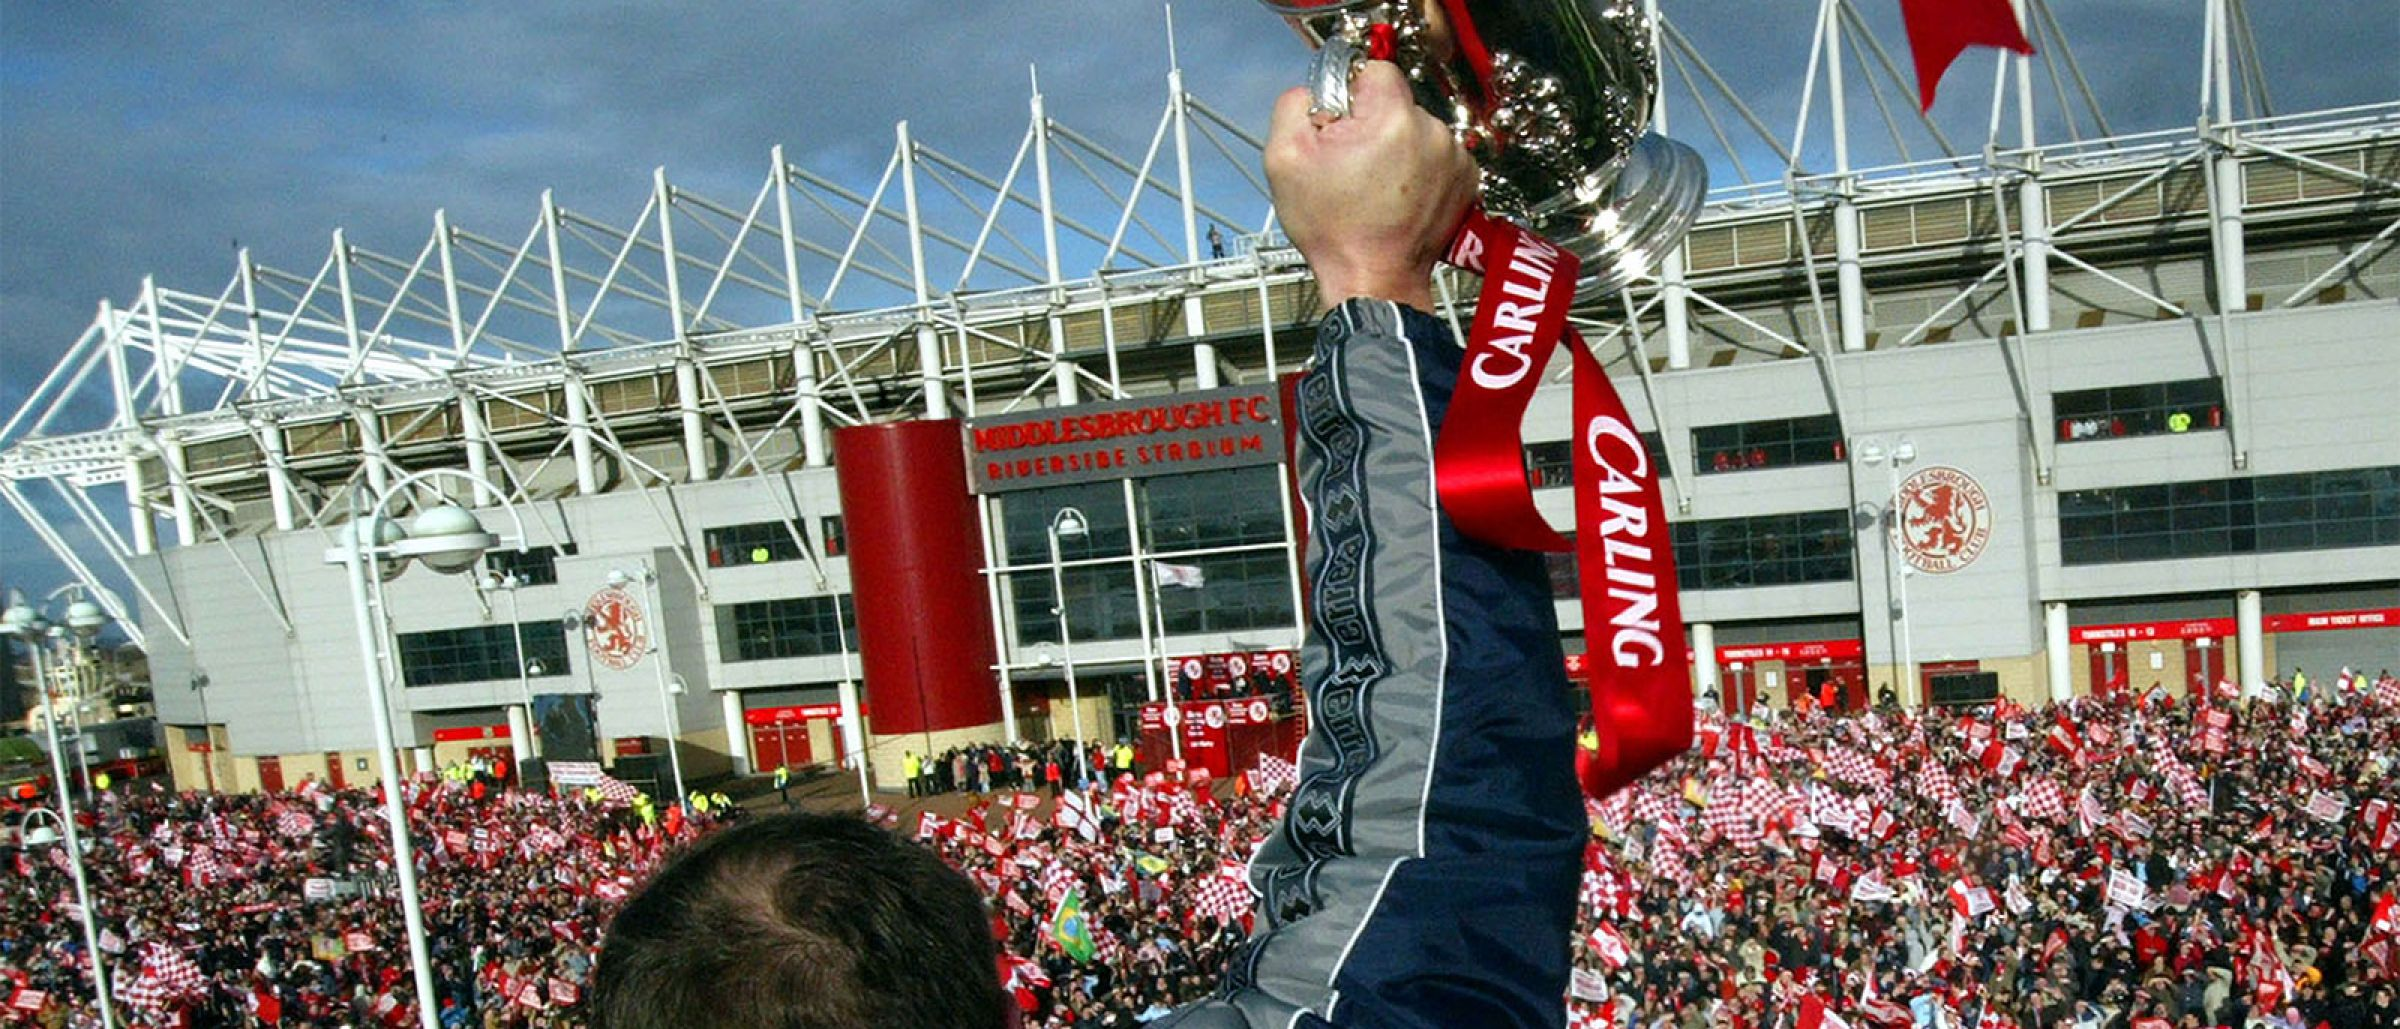 Thousands of fans watch Boro lift the Carling Cup in front of the Riverside Stadium